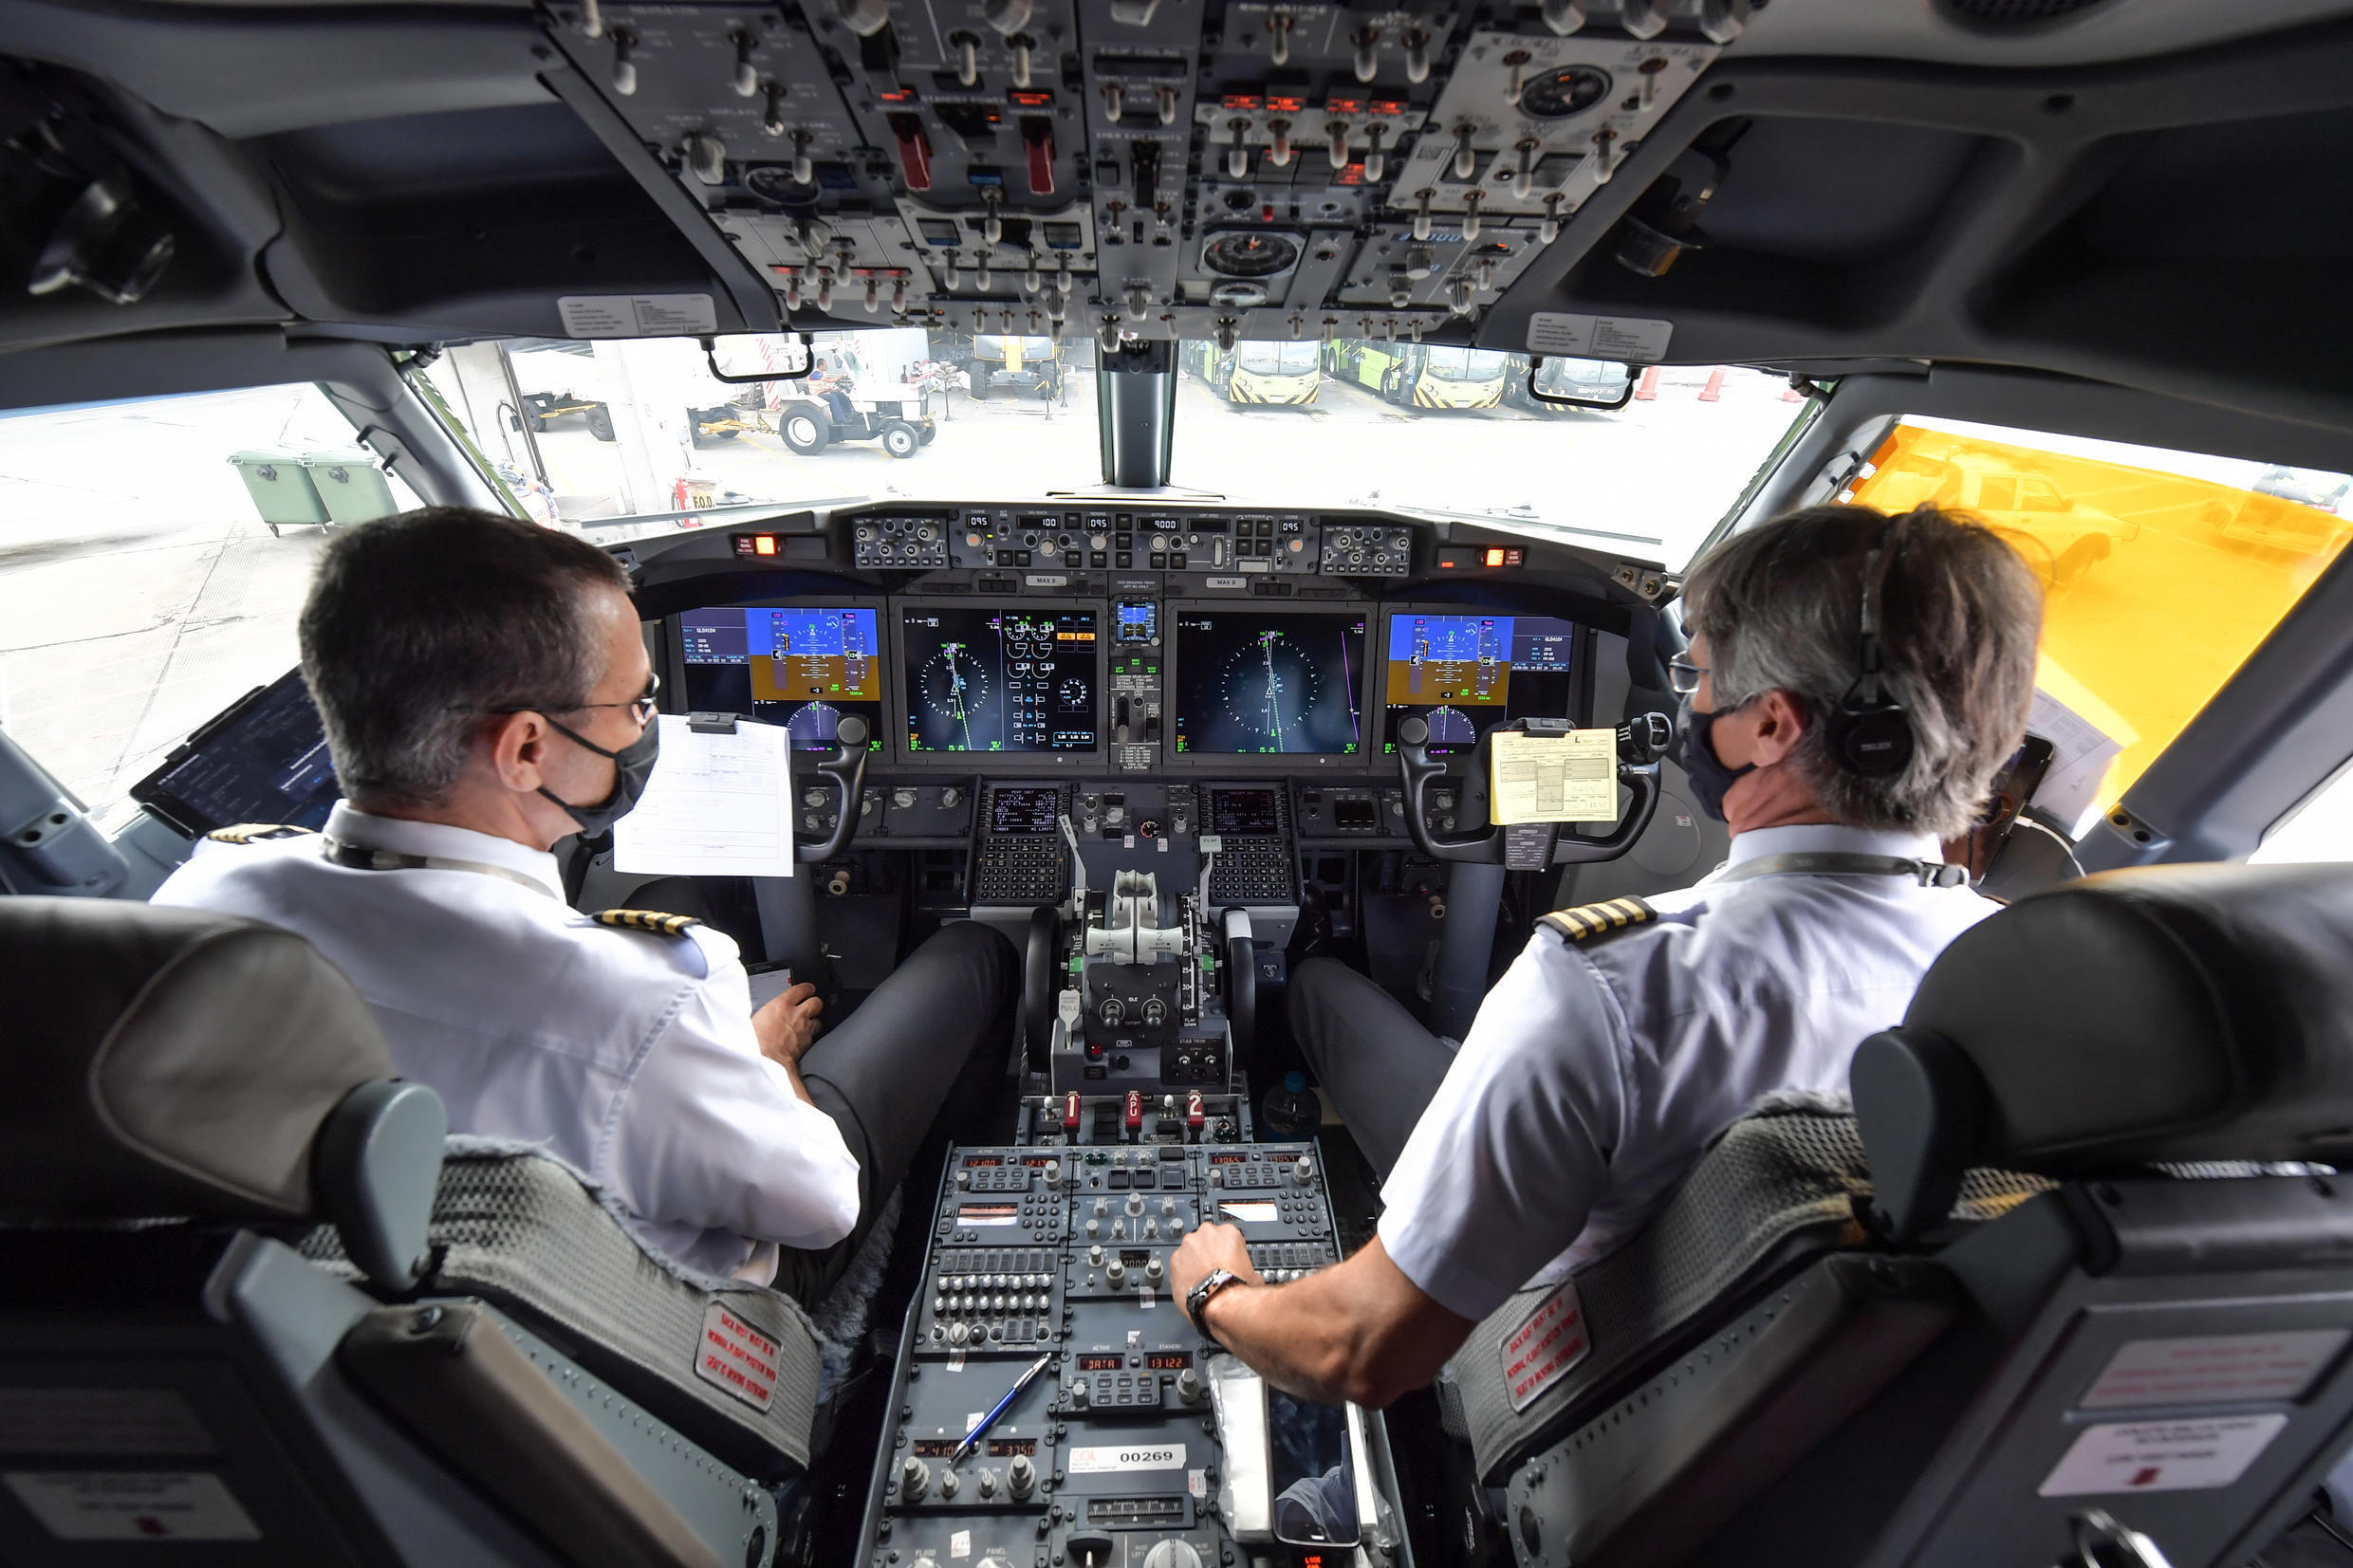 Pilots are pictured in the cockpit of a Boeing 737 MAX aircraft operated by low-cost airline Gol as it sits on the tarmac before take off at Guarulhos International Airport, near Sao Paulo on December 9, 2020, as the 737 MAX returns into use more than 20 months after it was grounded following two deadly crashes